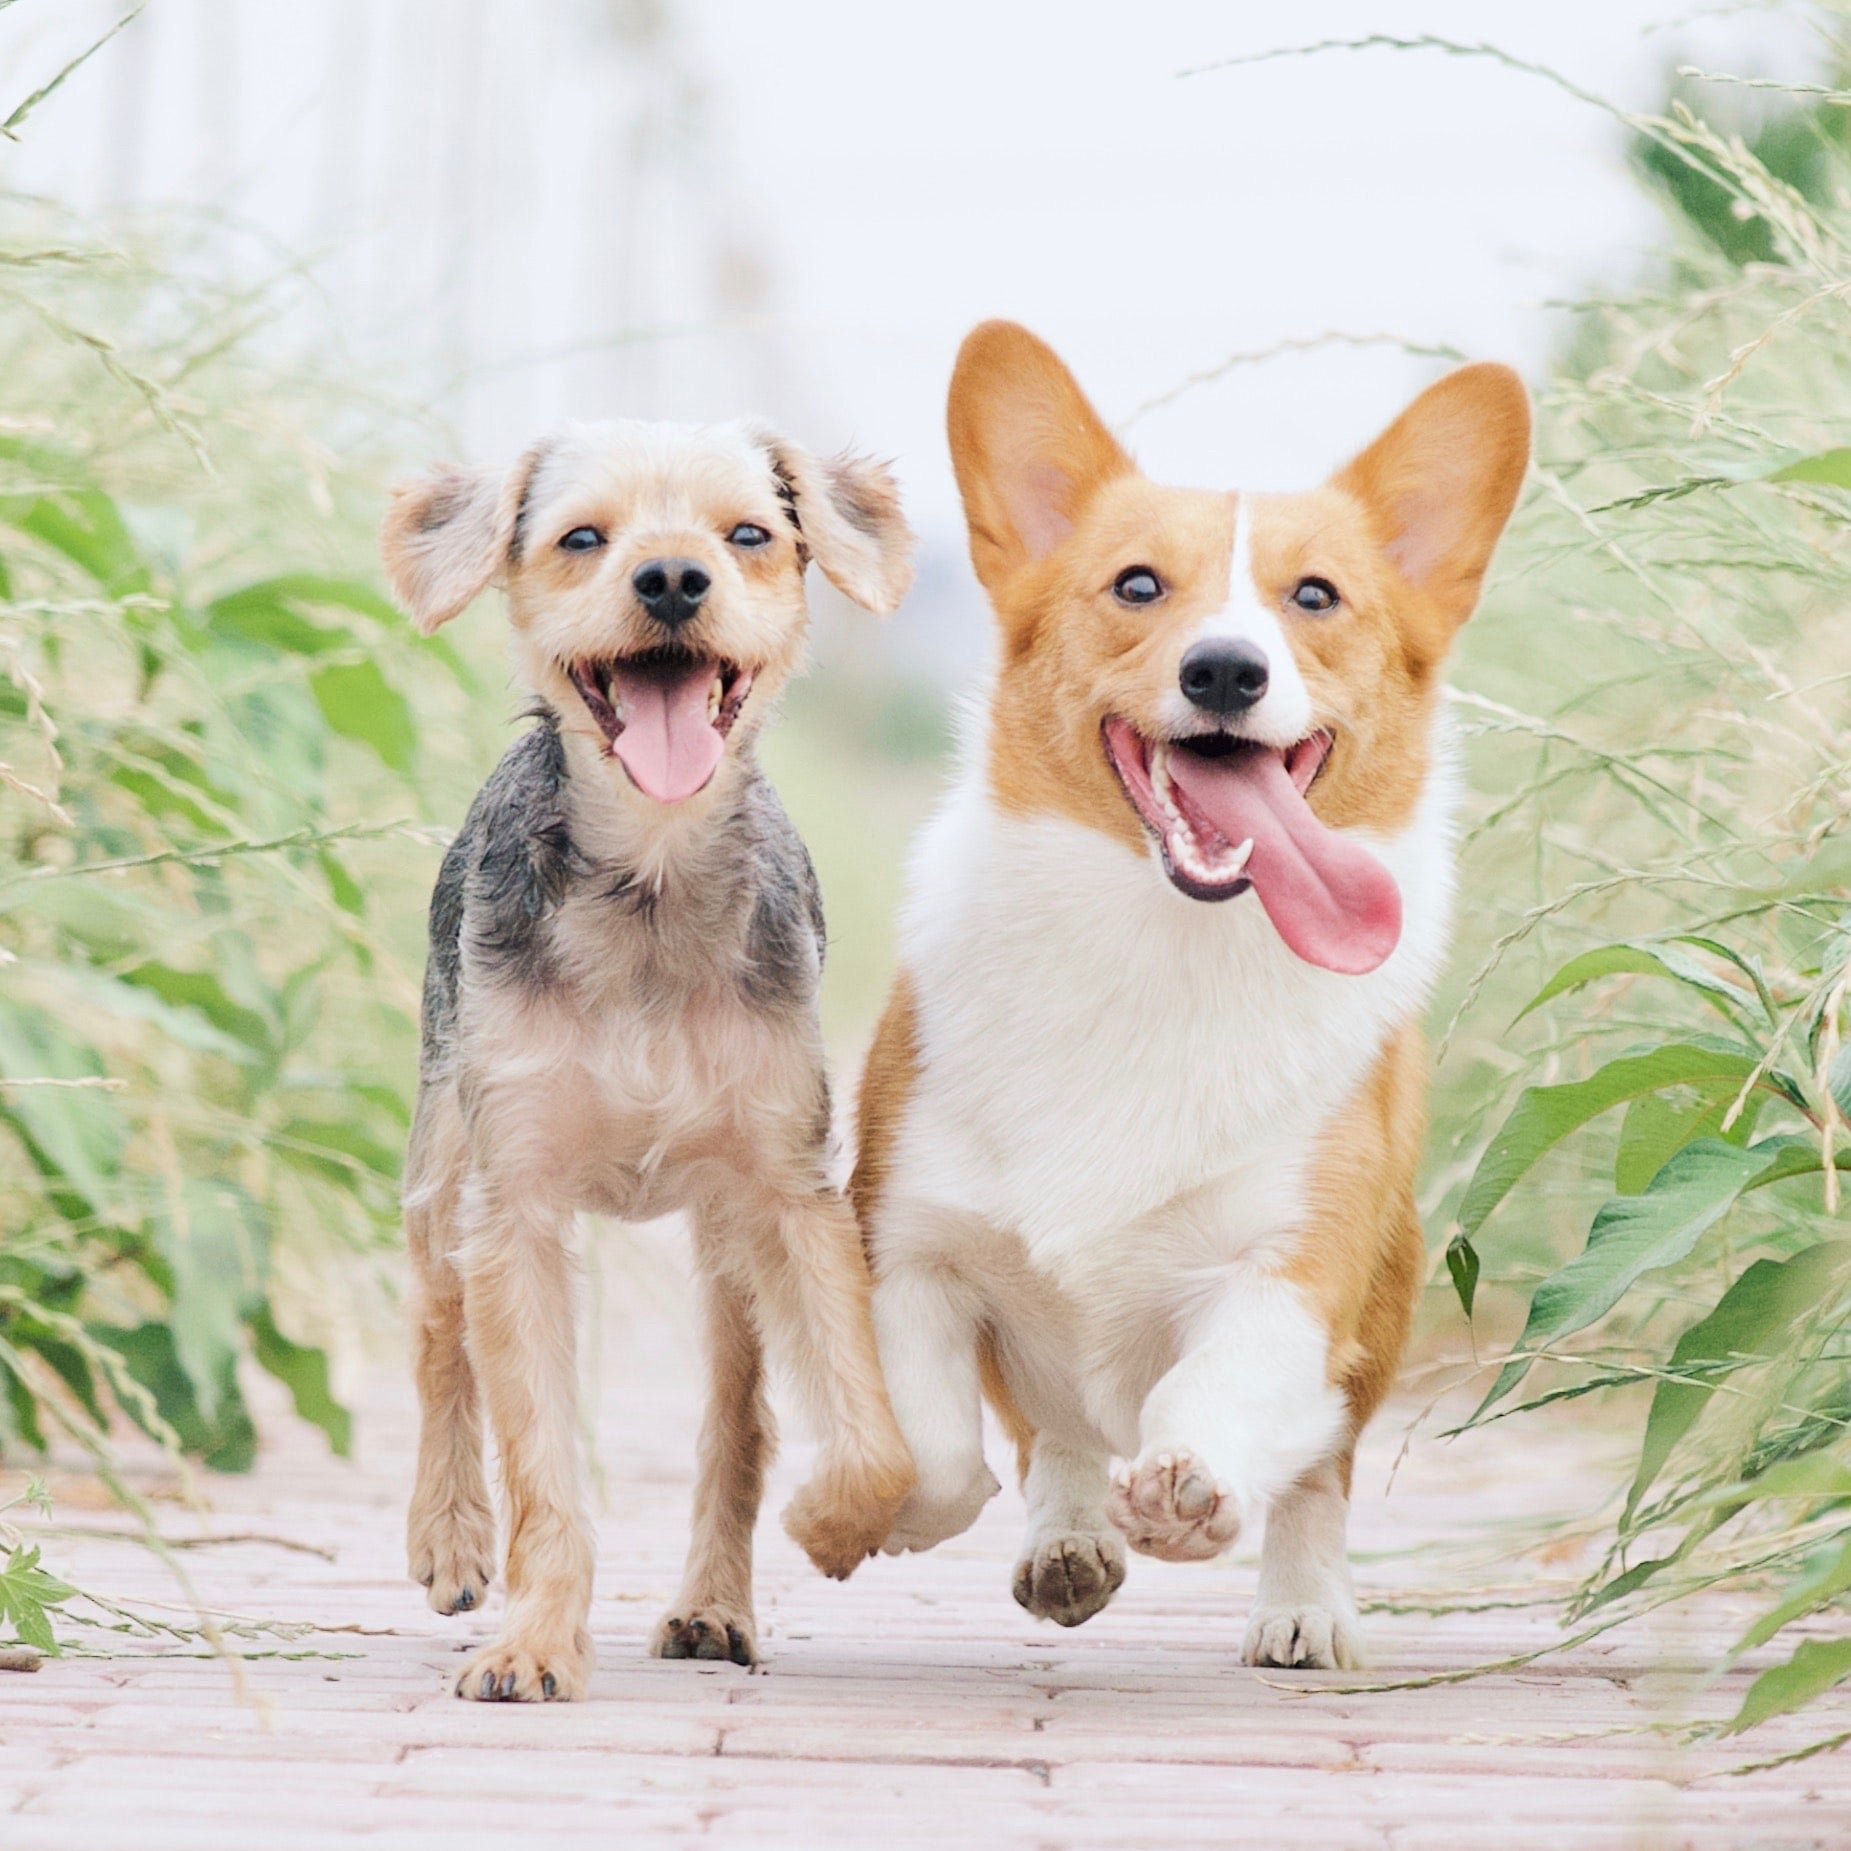 Two happy dogs running with tongues out